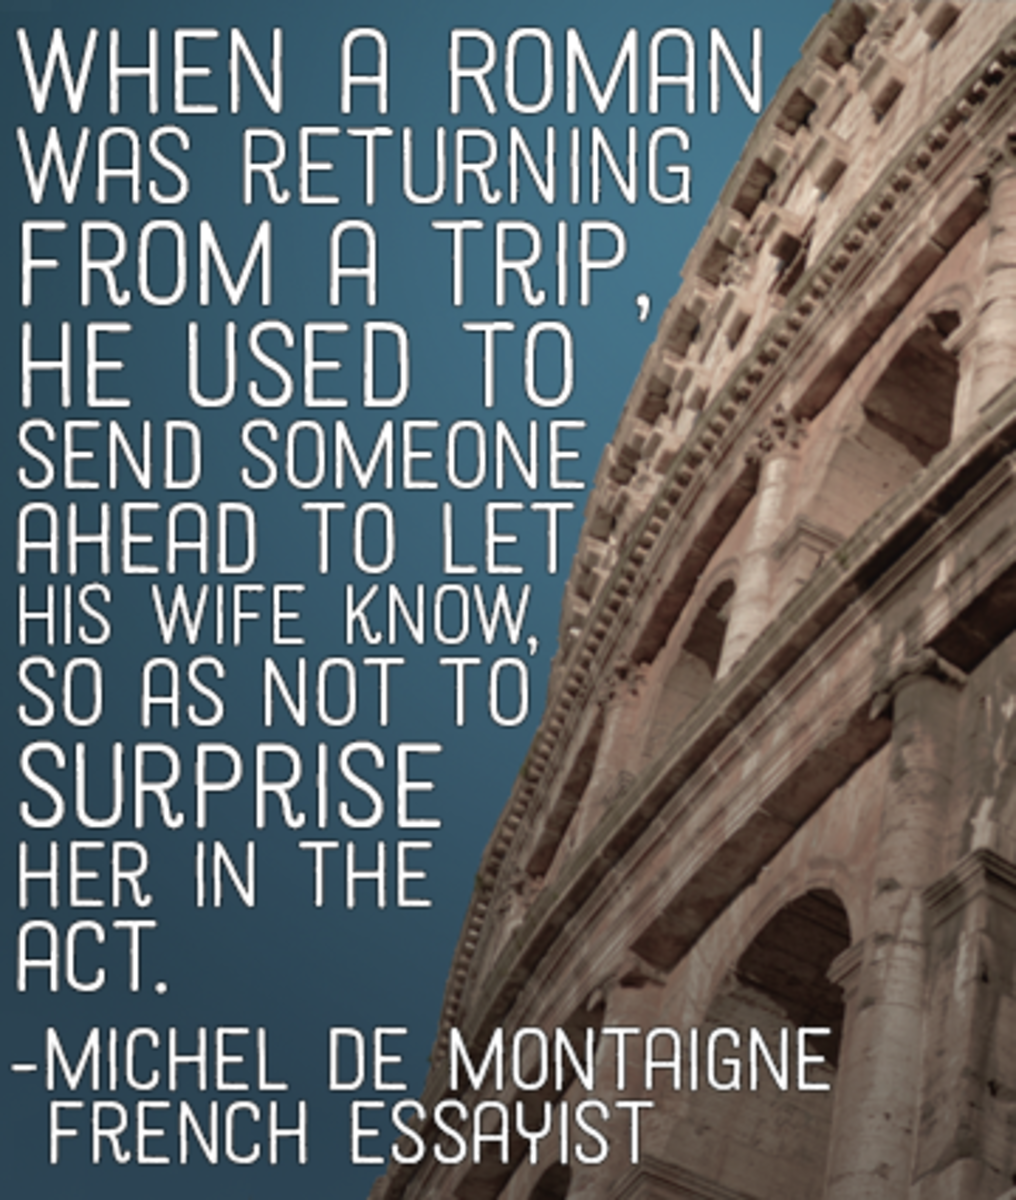 """""""When a Roman was returning from a trip, he used to send someone ahead to let his wife know, so as not to surprise her in the act."""" —Michel de Montaigne, French essayist"""